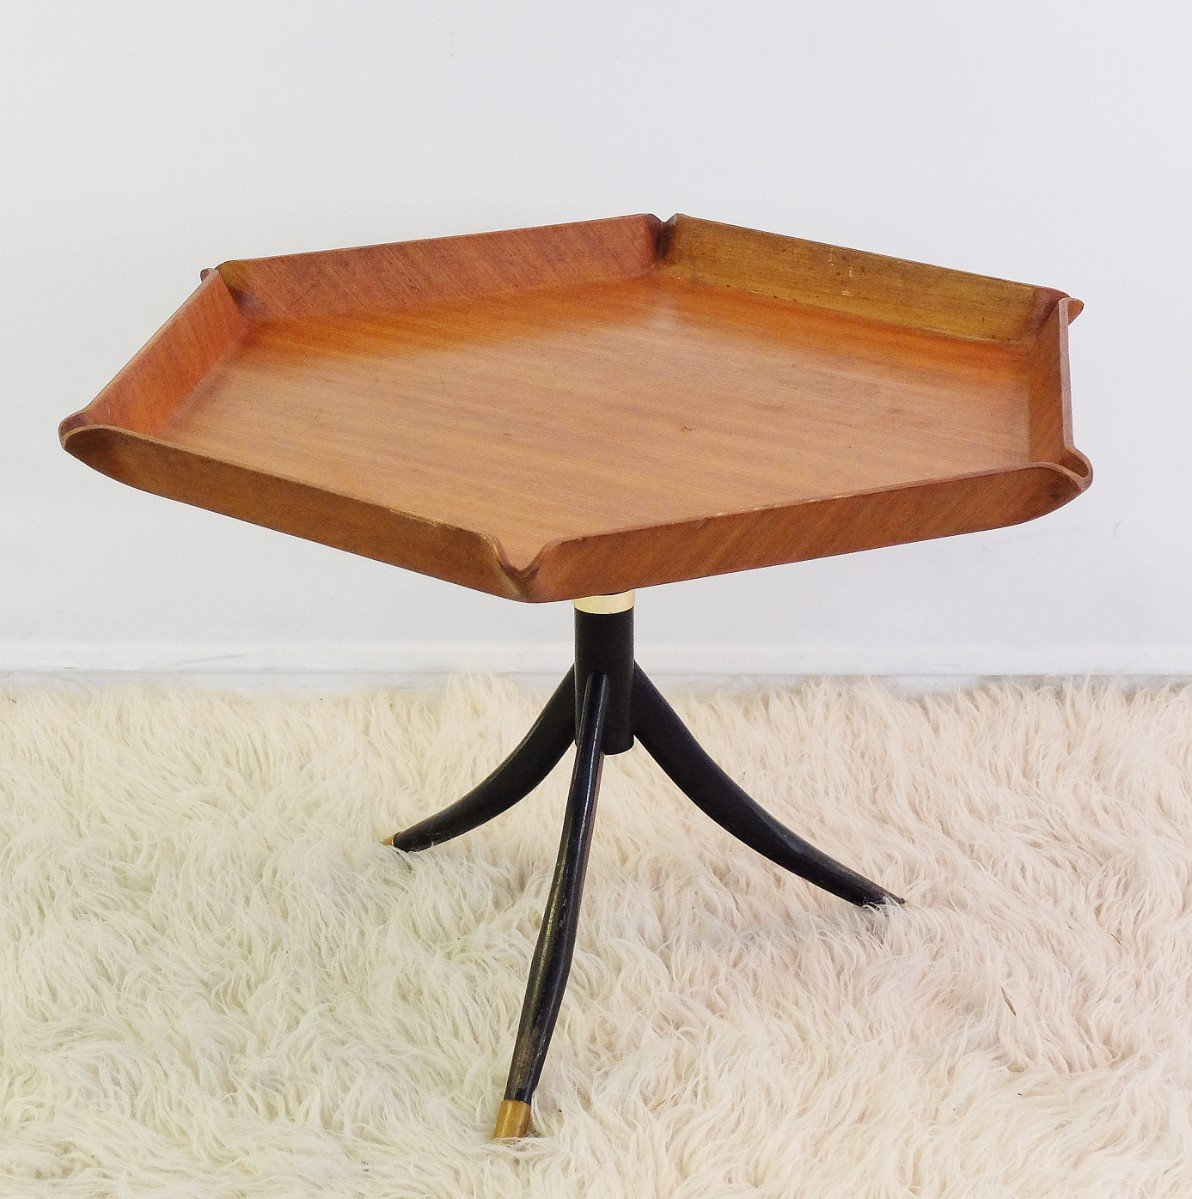 Italian Teak Hexagonal Coffee Table From Tura 1950s For Sale At Pamono